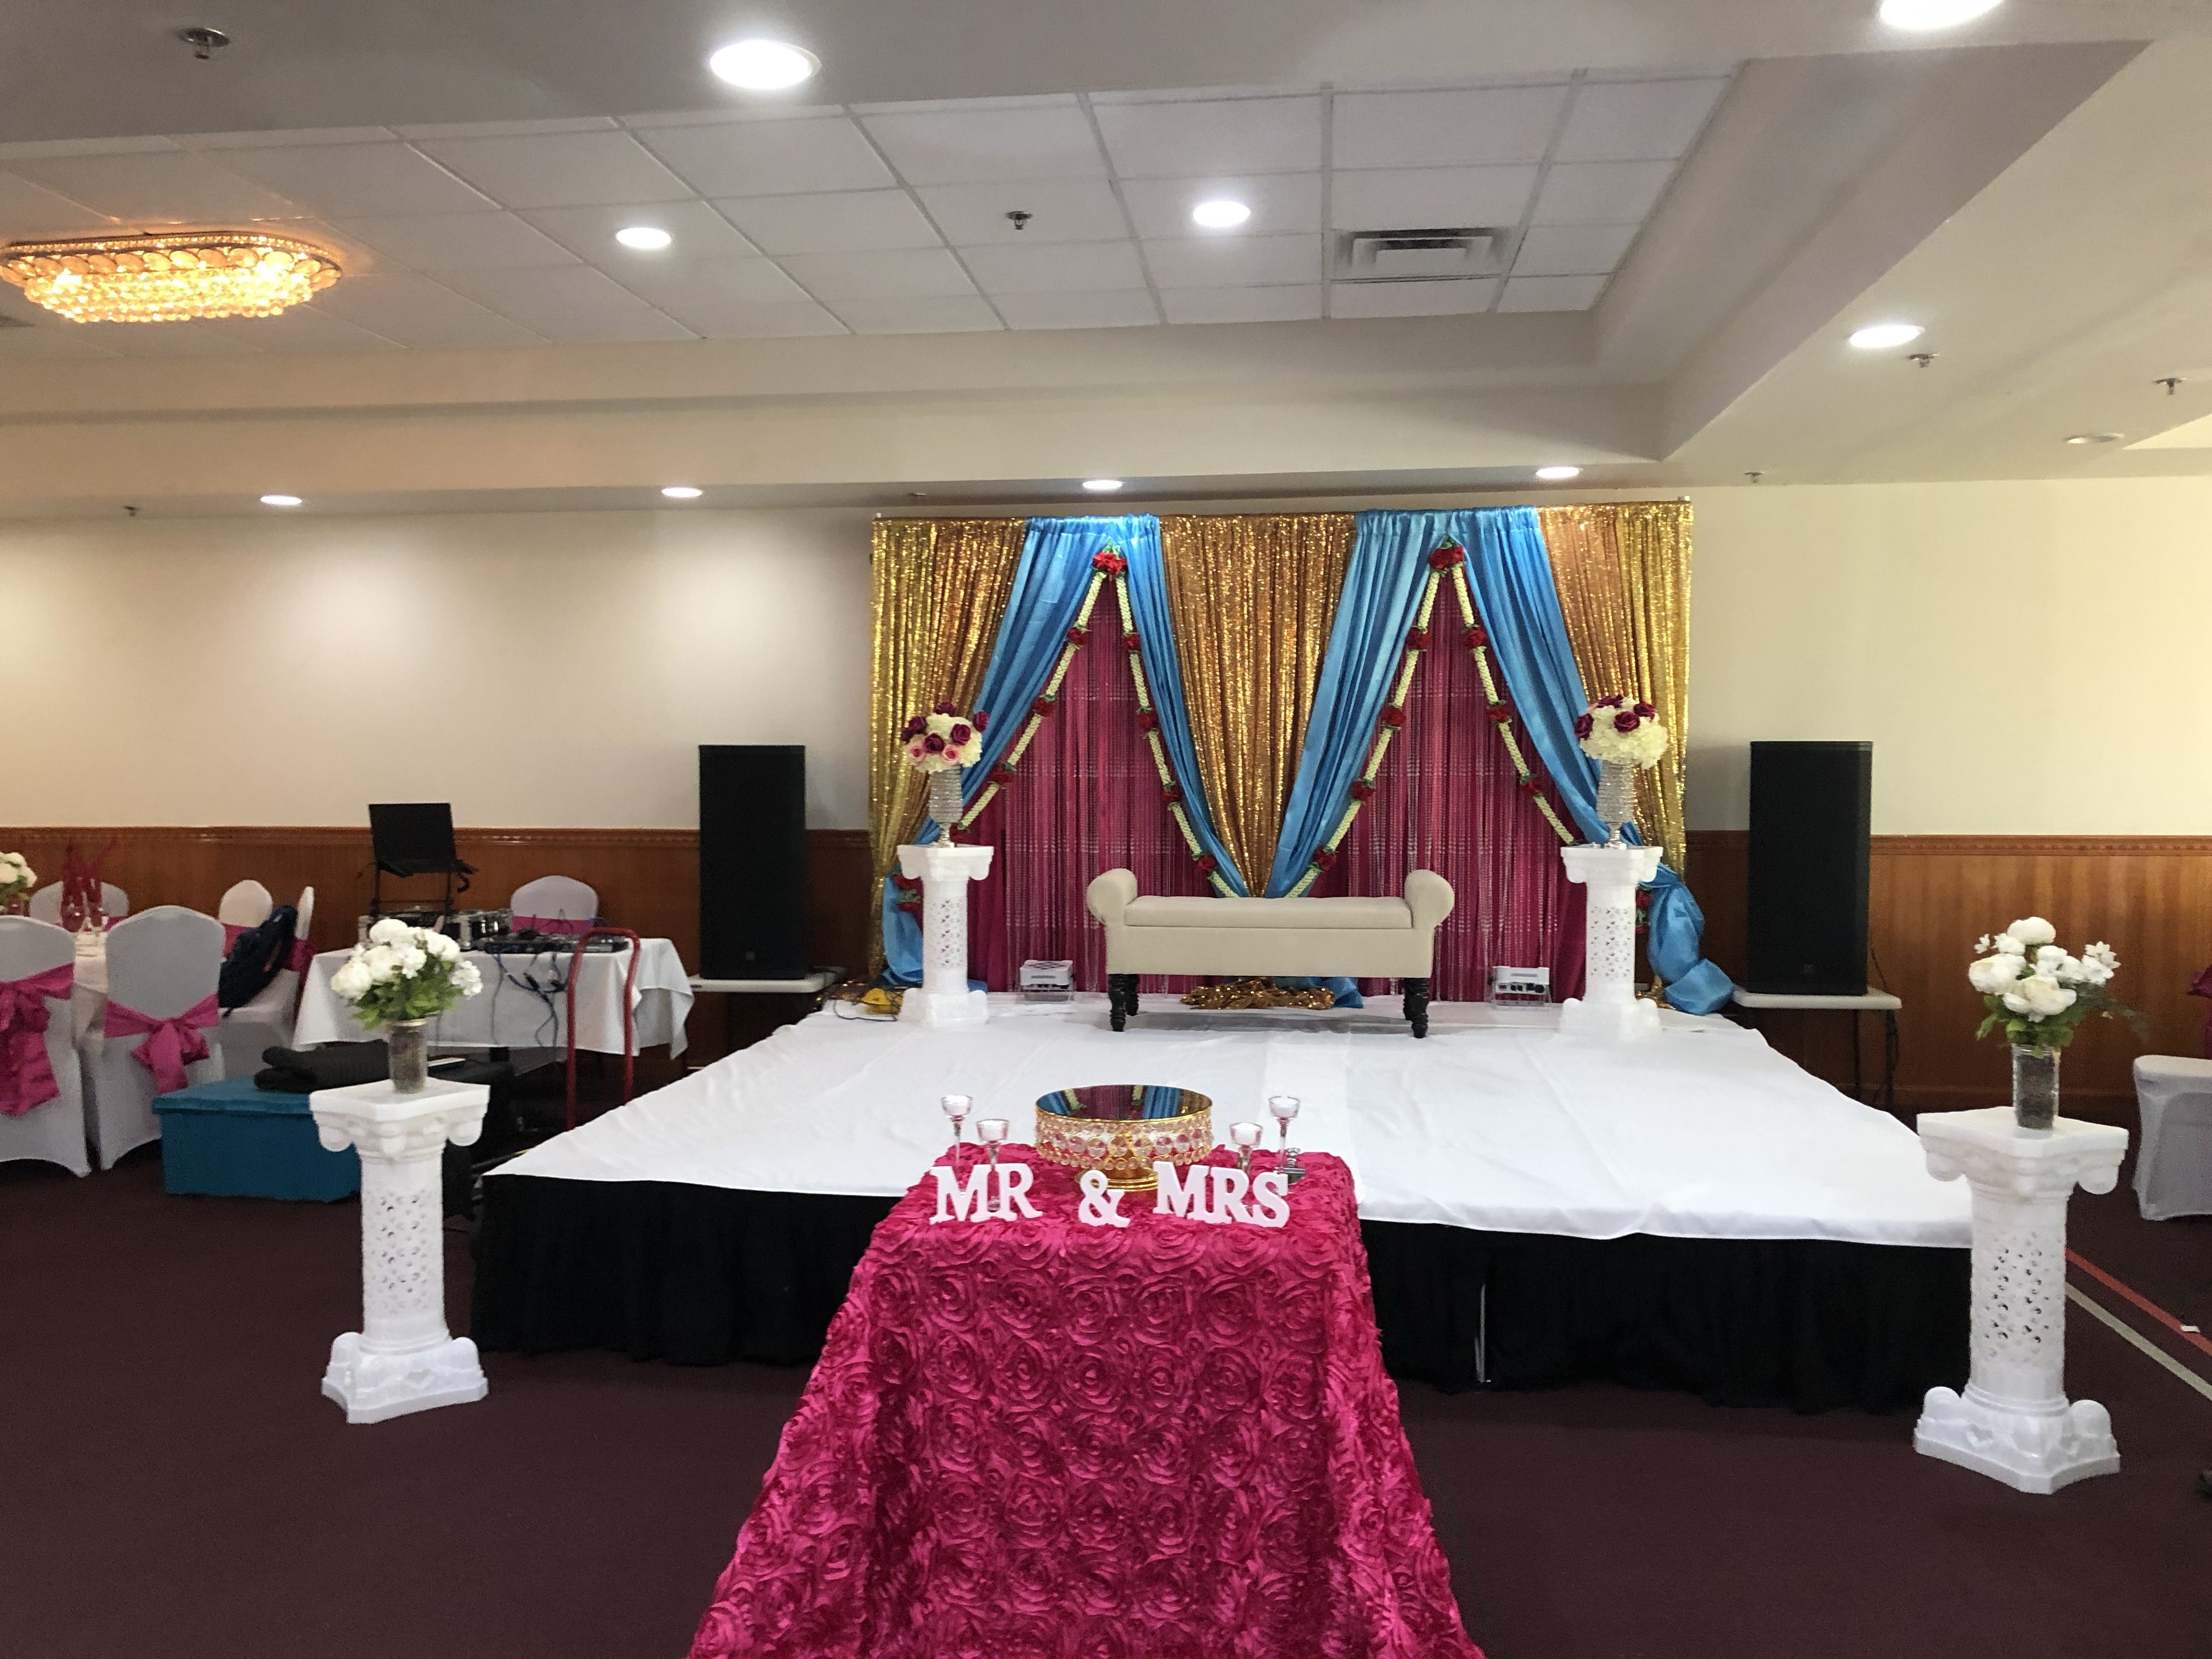 Bridal Shower Decorations Moon Indian Restaurant Atlanta Anju Events Decorations Best Party Event Planning And Decorations In Atlanta Birthday Parties Graduation Parties More